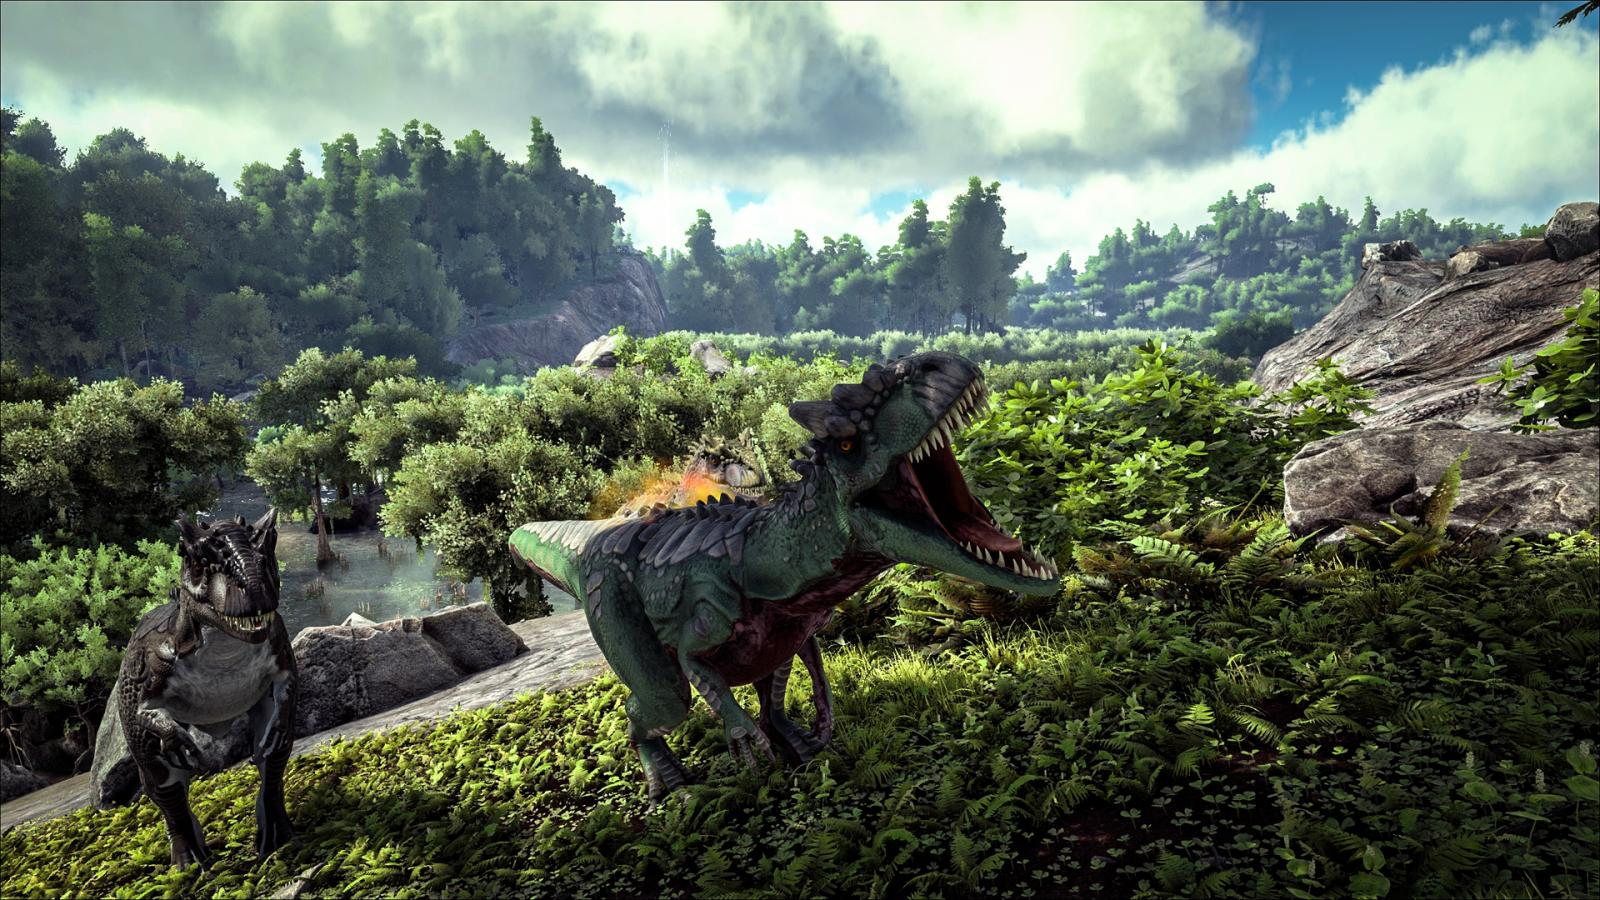 large.Allosaurus.jpg.f7470eeb6422a8be2c6